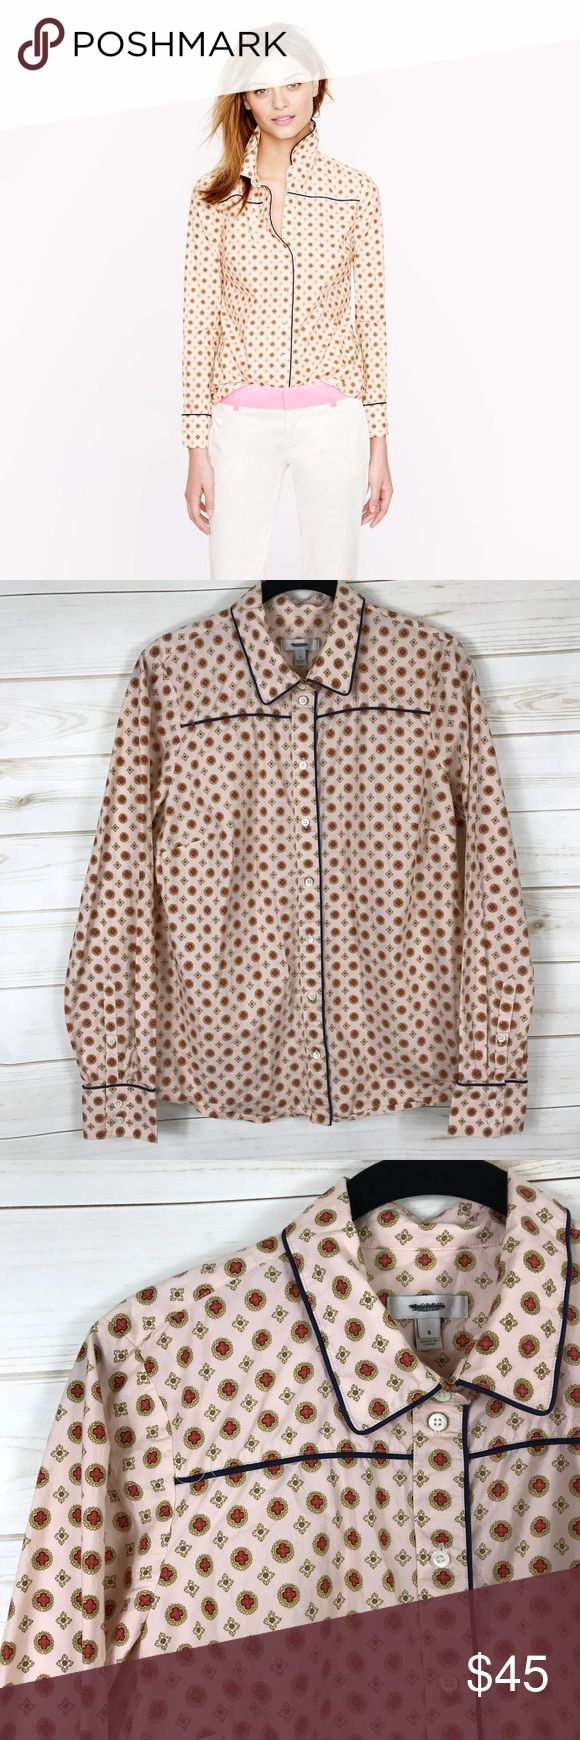 [J. Crew] Light Pink Piped Printed Button Down • NWOT • Excellent Condition • Long Sleeve • Pink Background • Blue Piping • Printed • Button Down • 8 Buttons Down Front • 3 Button Cuff • Collared • Boyfriend Pajama Inspired Look • Style Name: Piped Foulard • Label Blacked Out to Prevent Store Returns • Length: 14ins • Bust: 36ins • Sleeve Length: 24.5ins • 100% Cotton J. Crew Tops Button Down Shirts